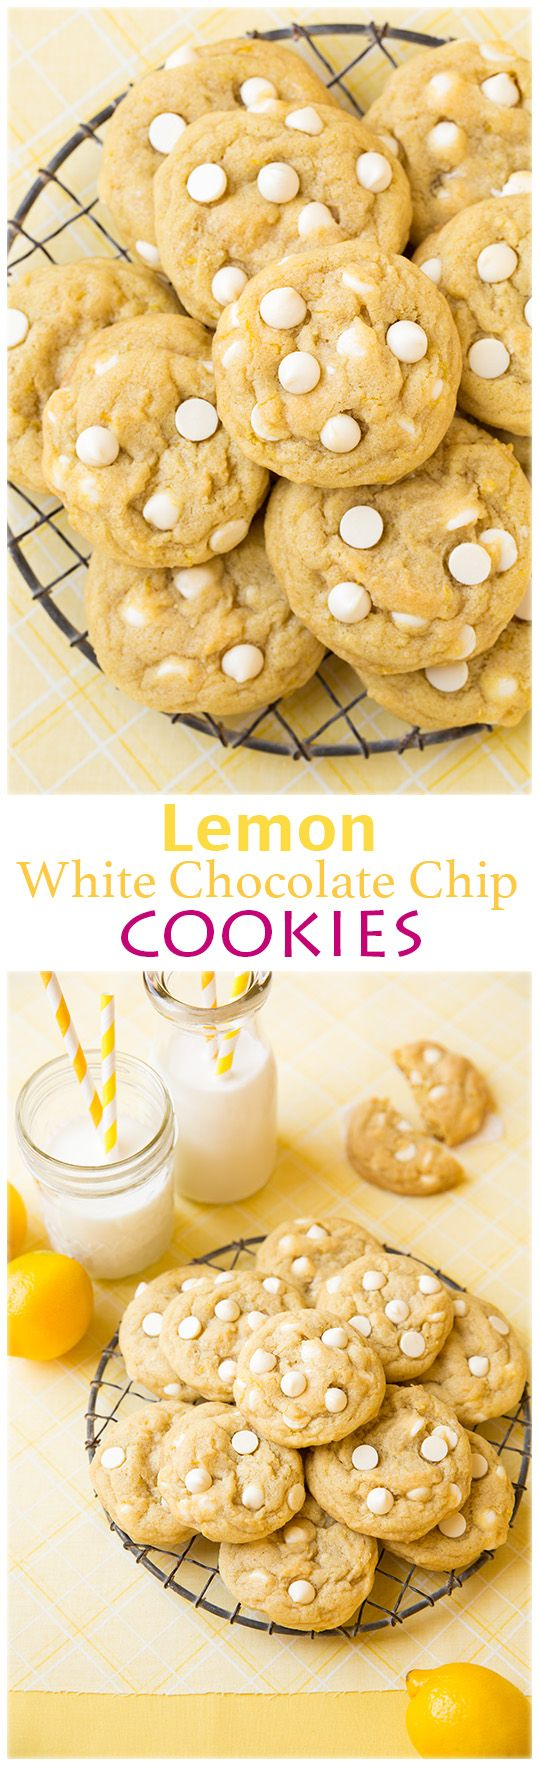 Lemon White Chocolate Chip Cookies - these are seriously delicious! So lemony and soft and perfectly chewy. A favorite use for lemons. @cookingclassy